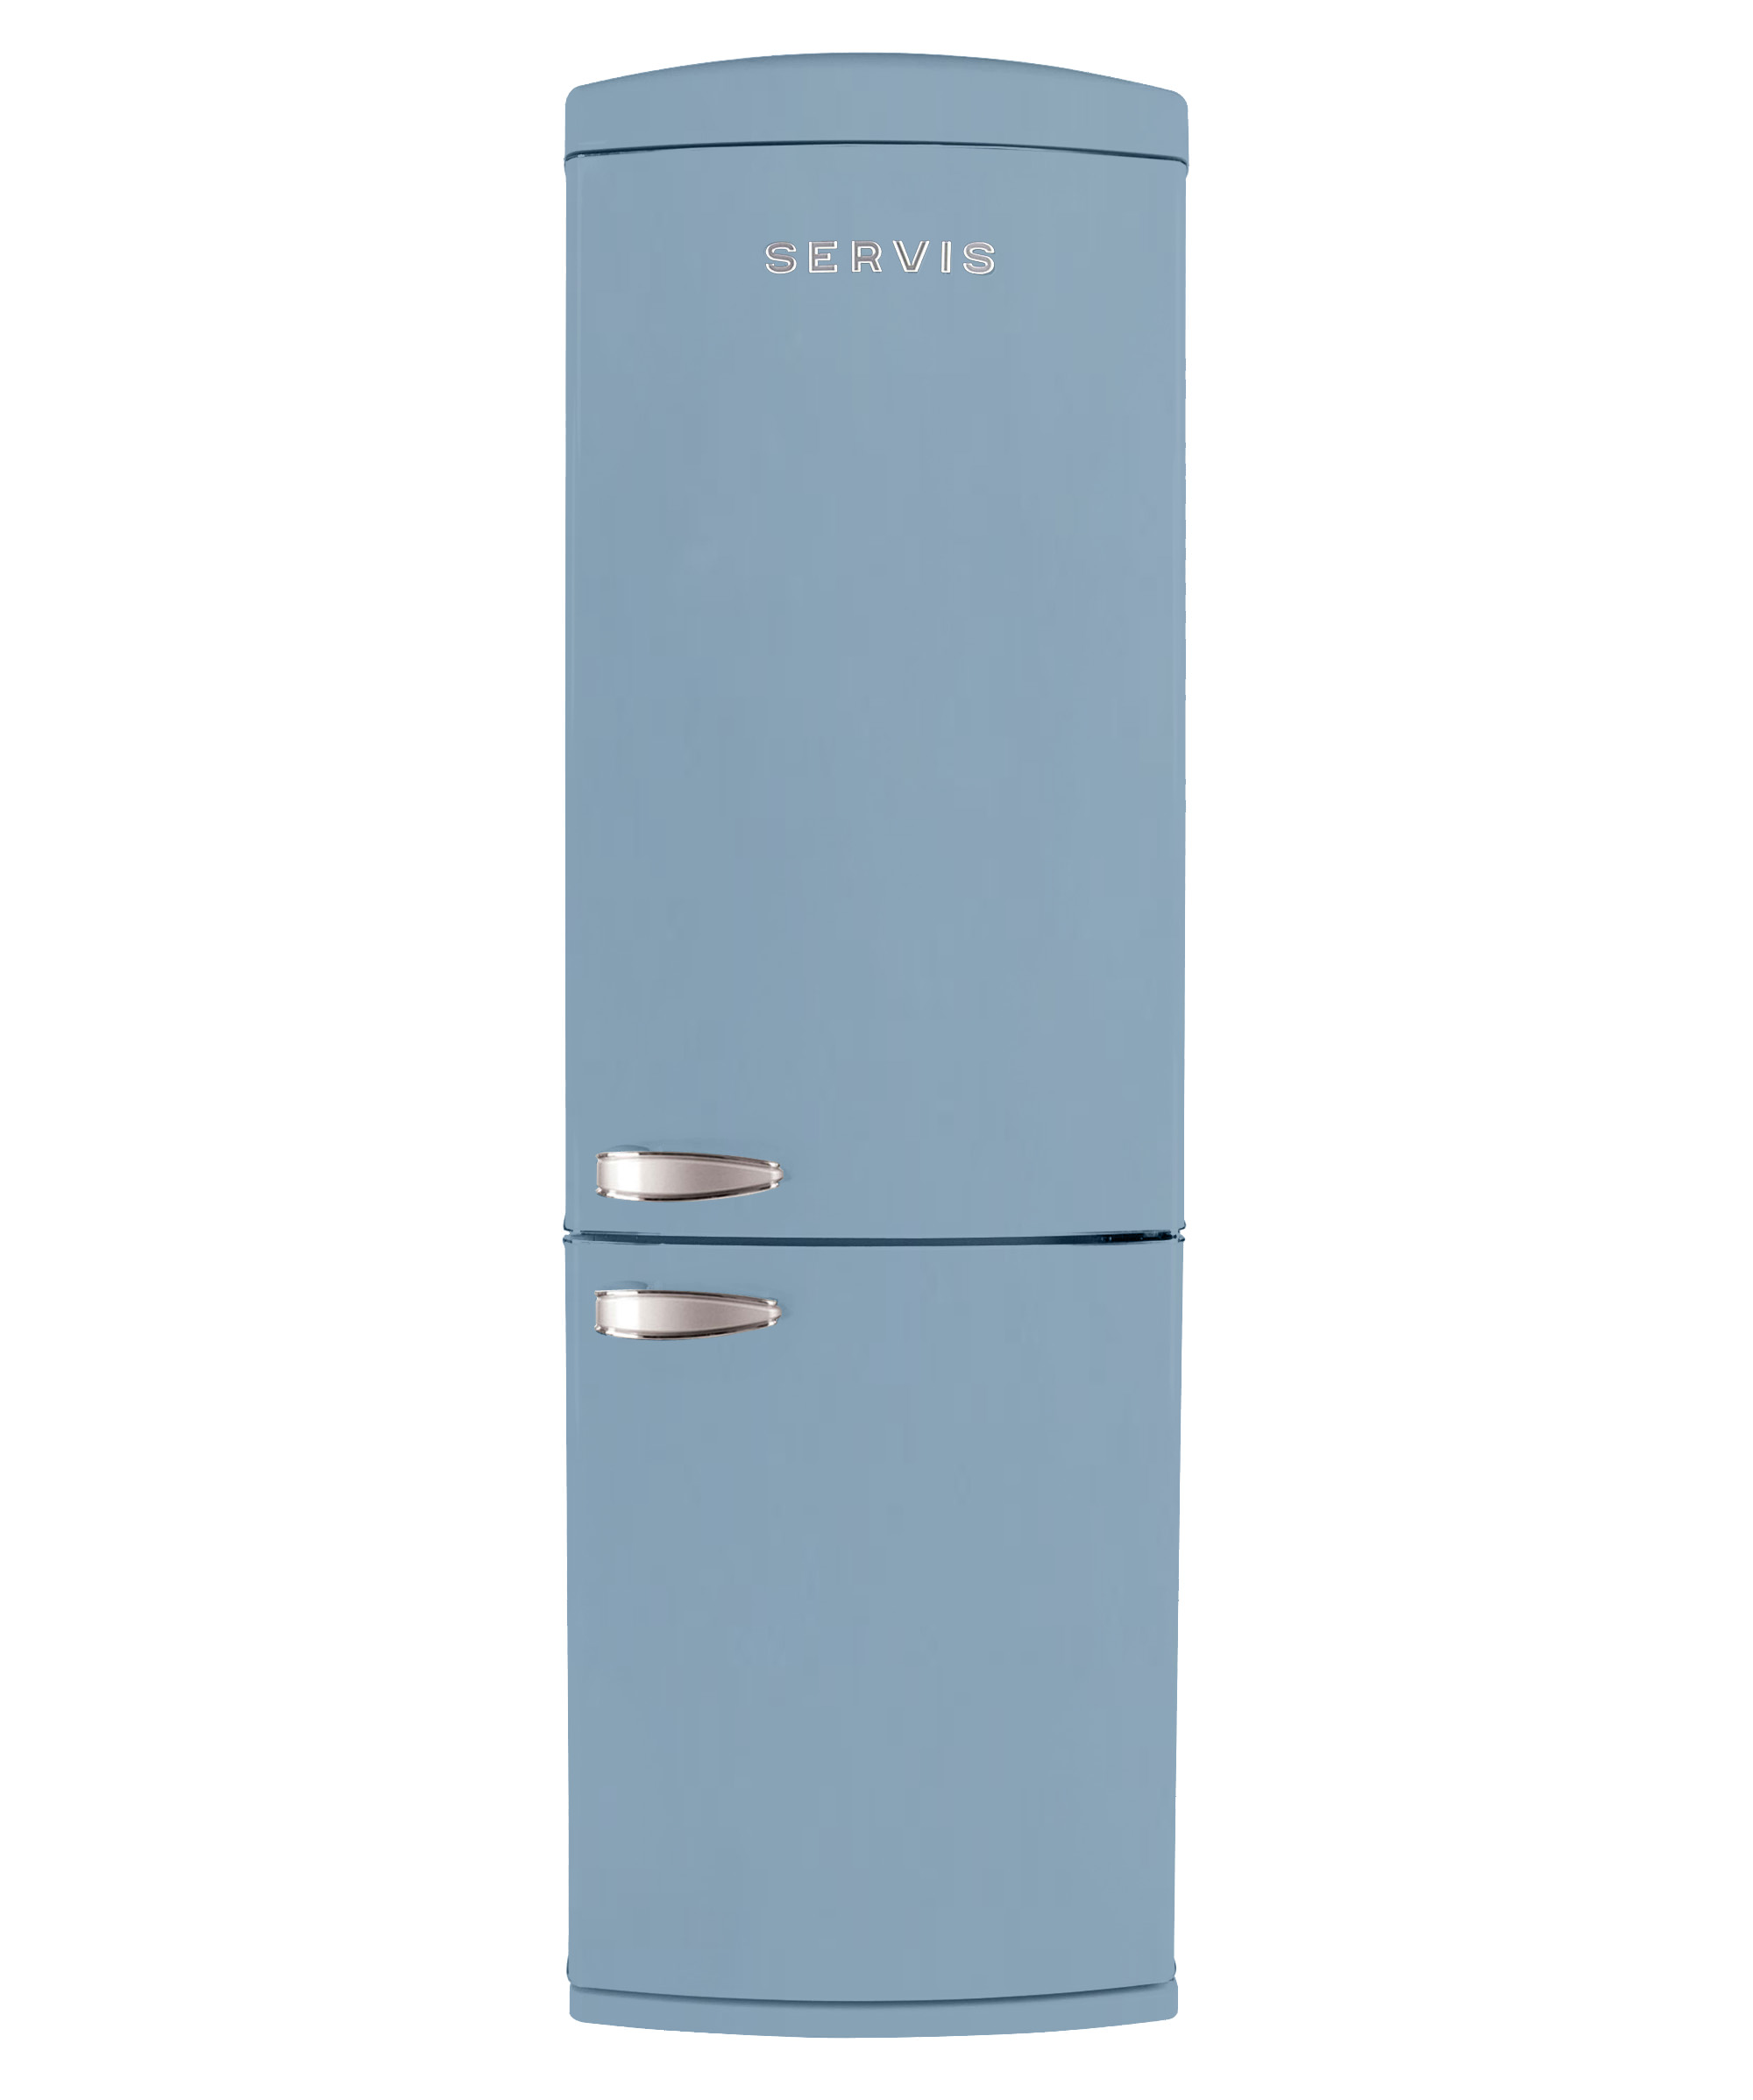 C90185RETROP - Pale Blue - Retro Fridge Freezer